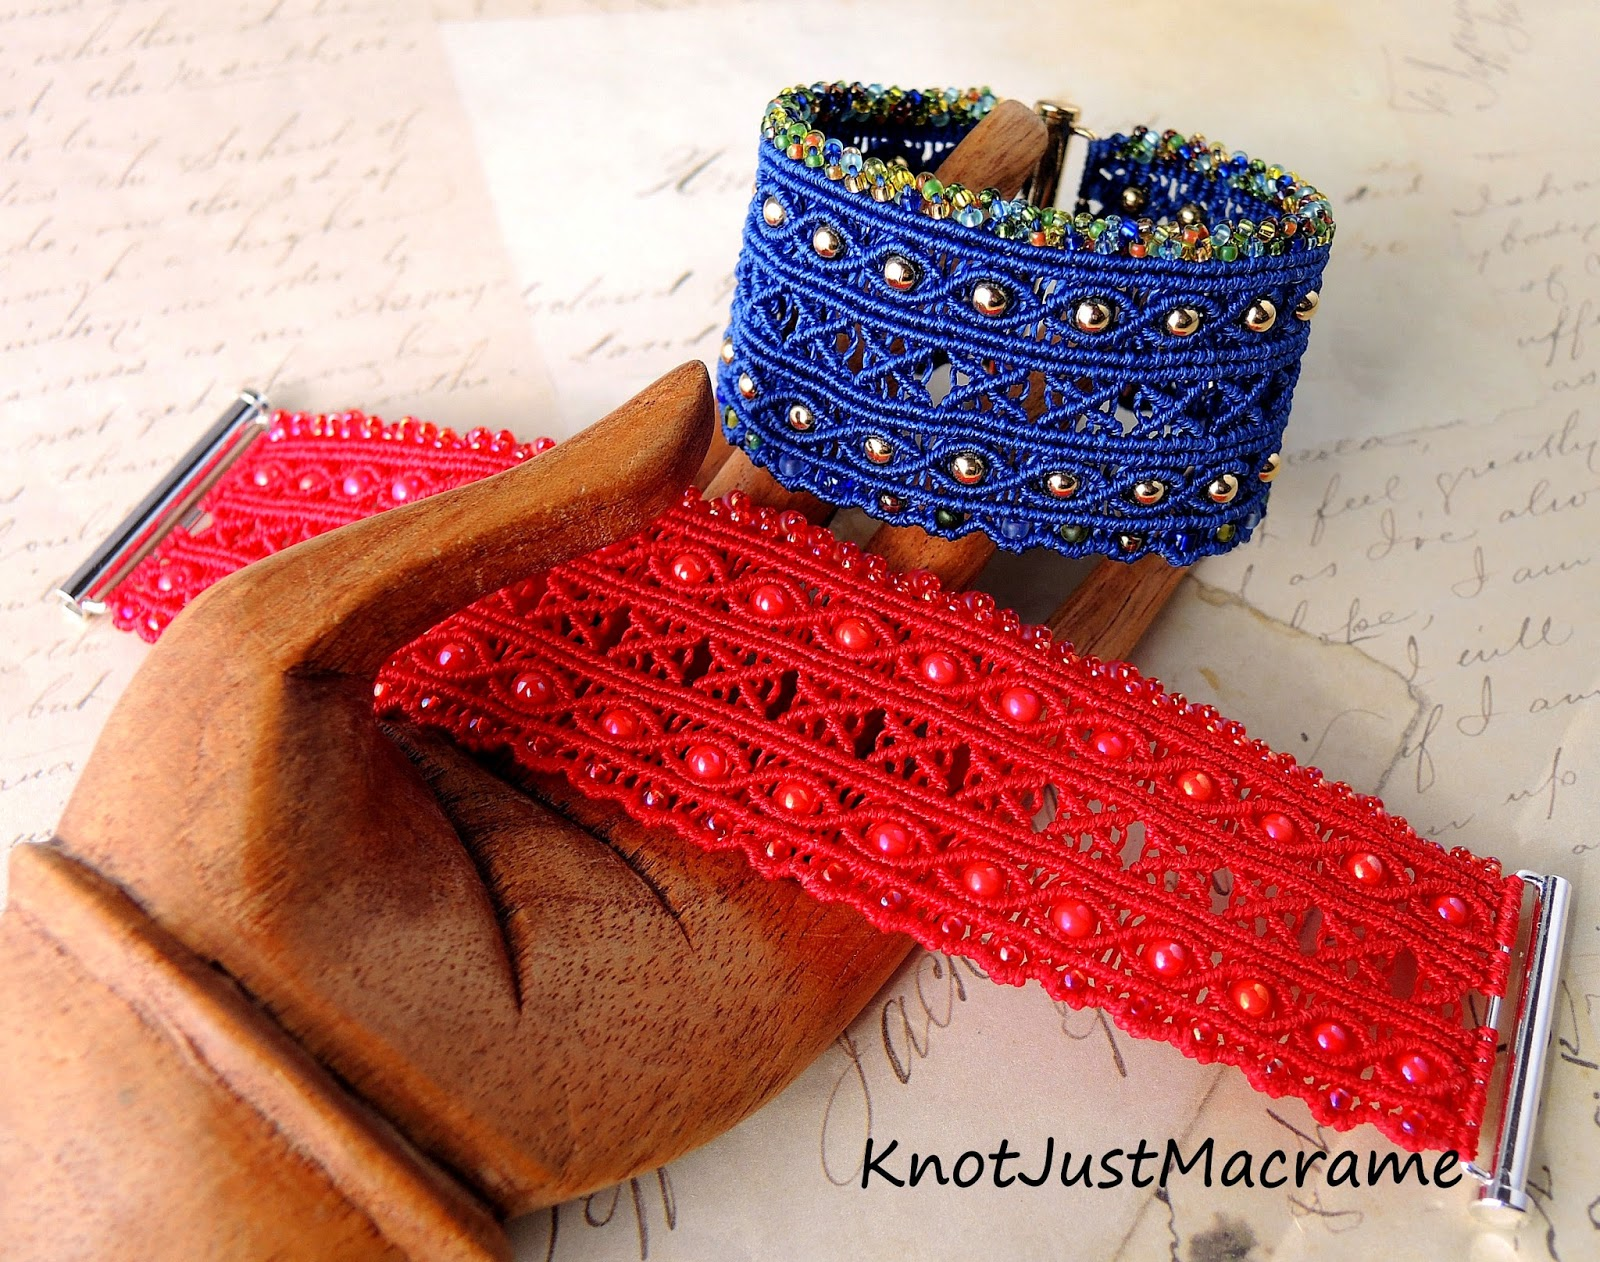 Micro macrame cuff pattern in two different colorways.